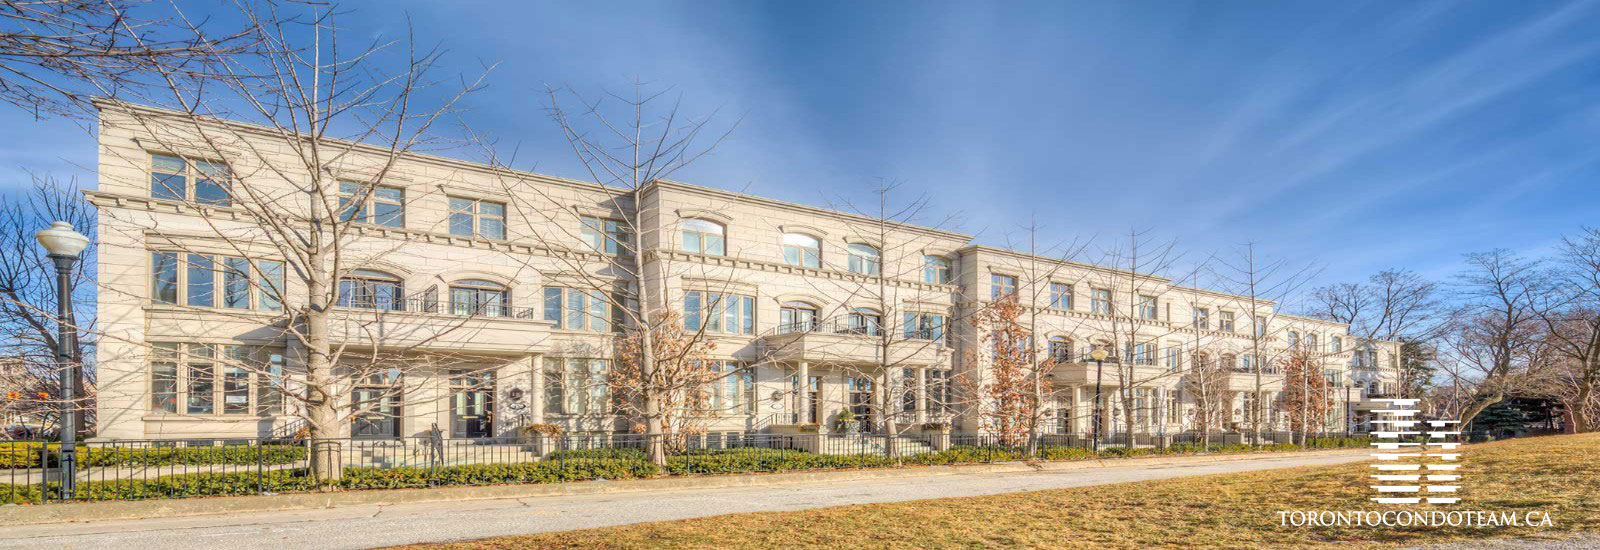 260 Russel Hill Road Condos For Sale